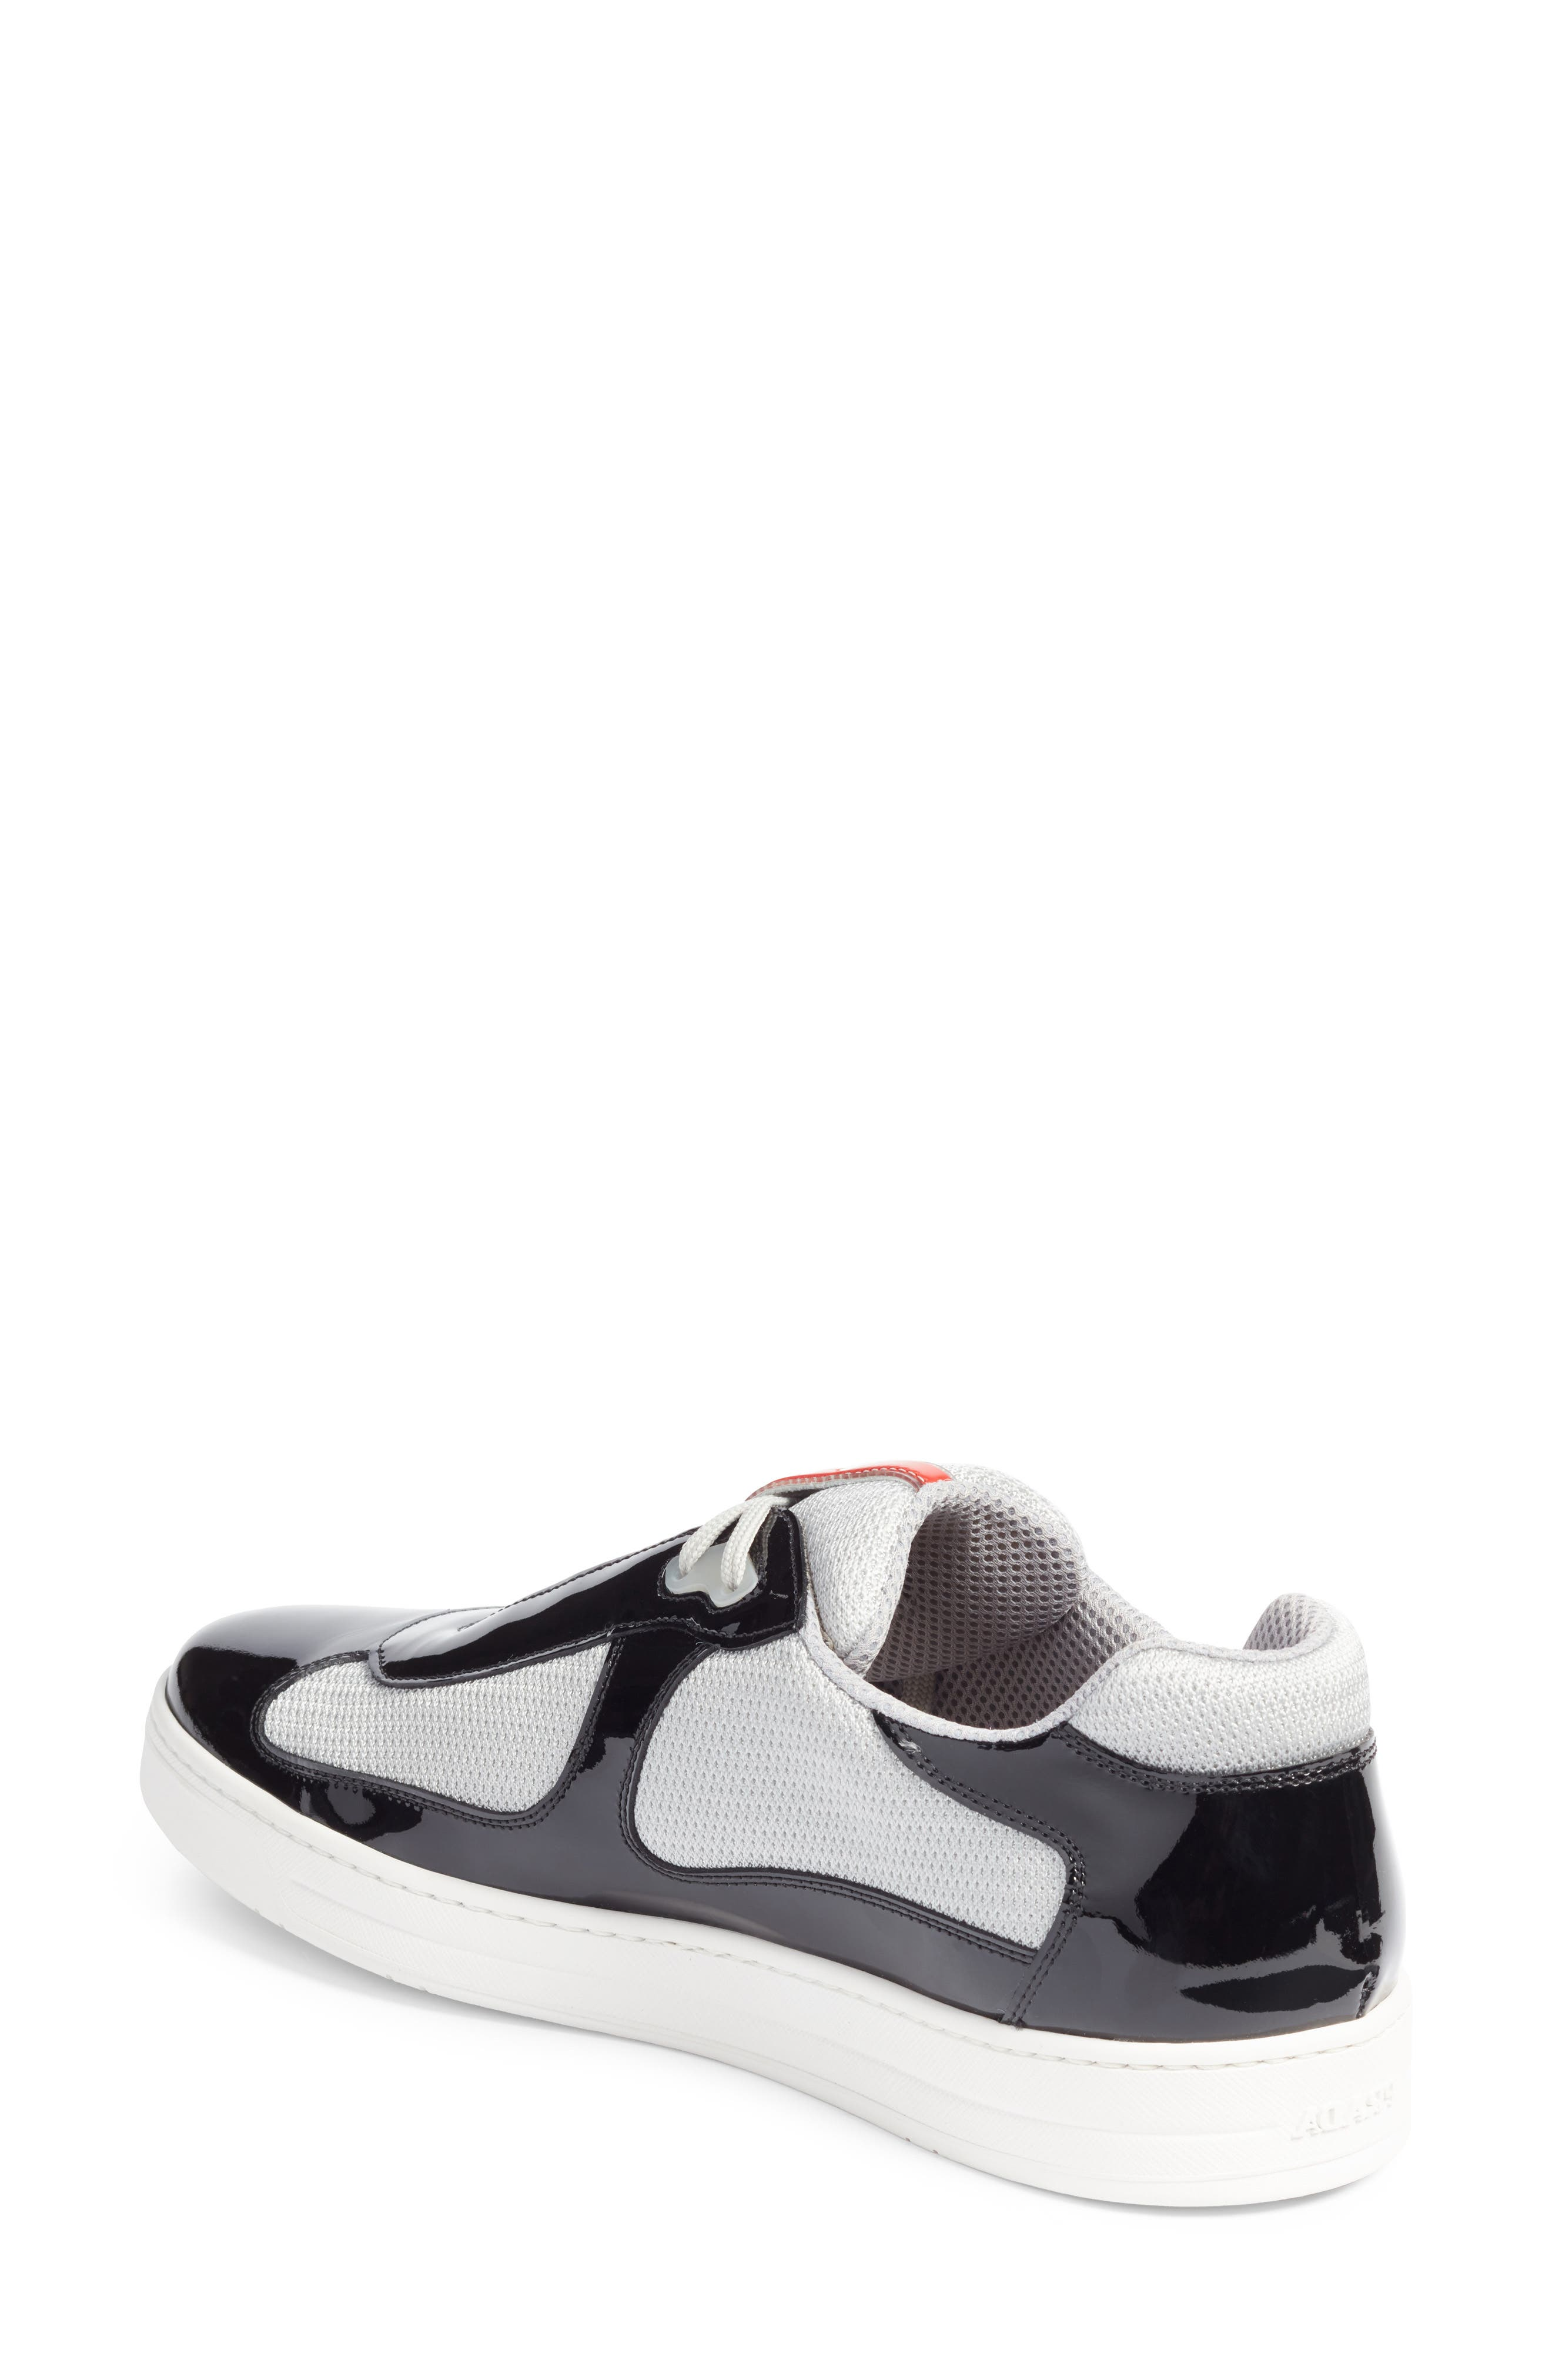 Linea Rossa New America's Cup Sneaker,                             Alternate thumbnail 2, color,                             009